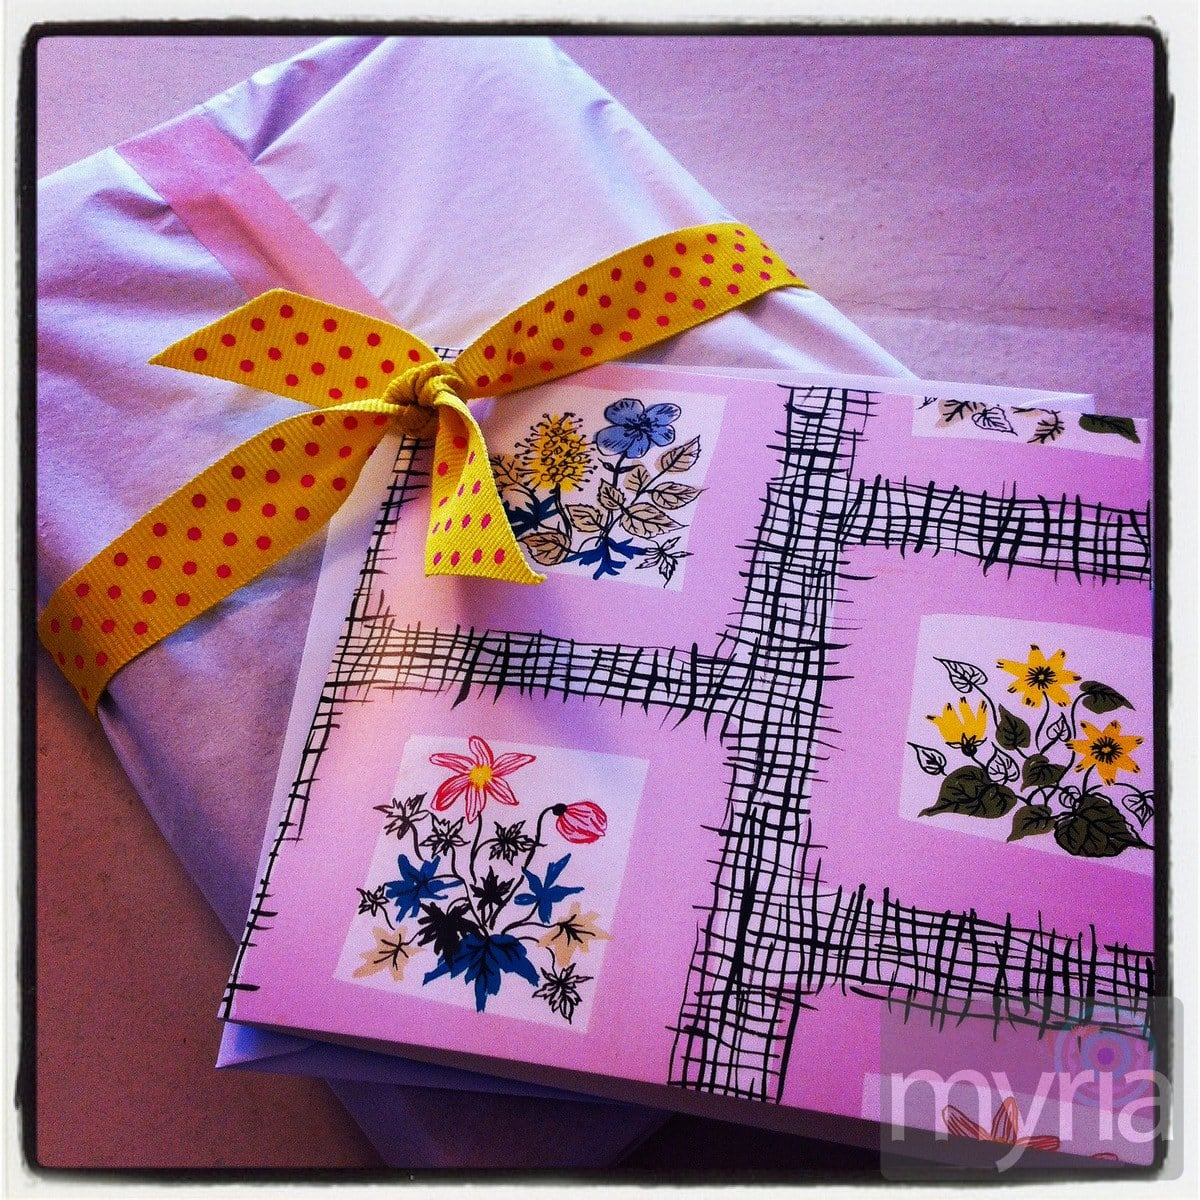 Creative gift wrap to make this card, attached with colorful ribbon to tissue-paper covered present